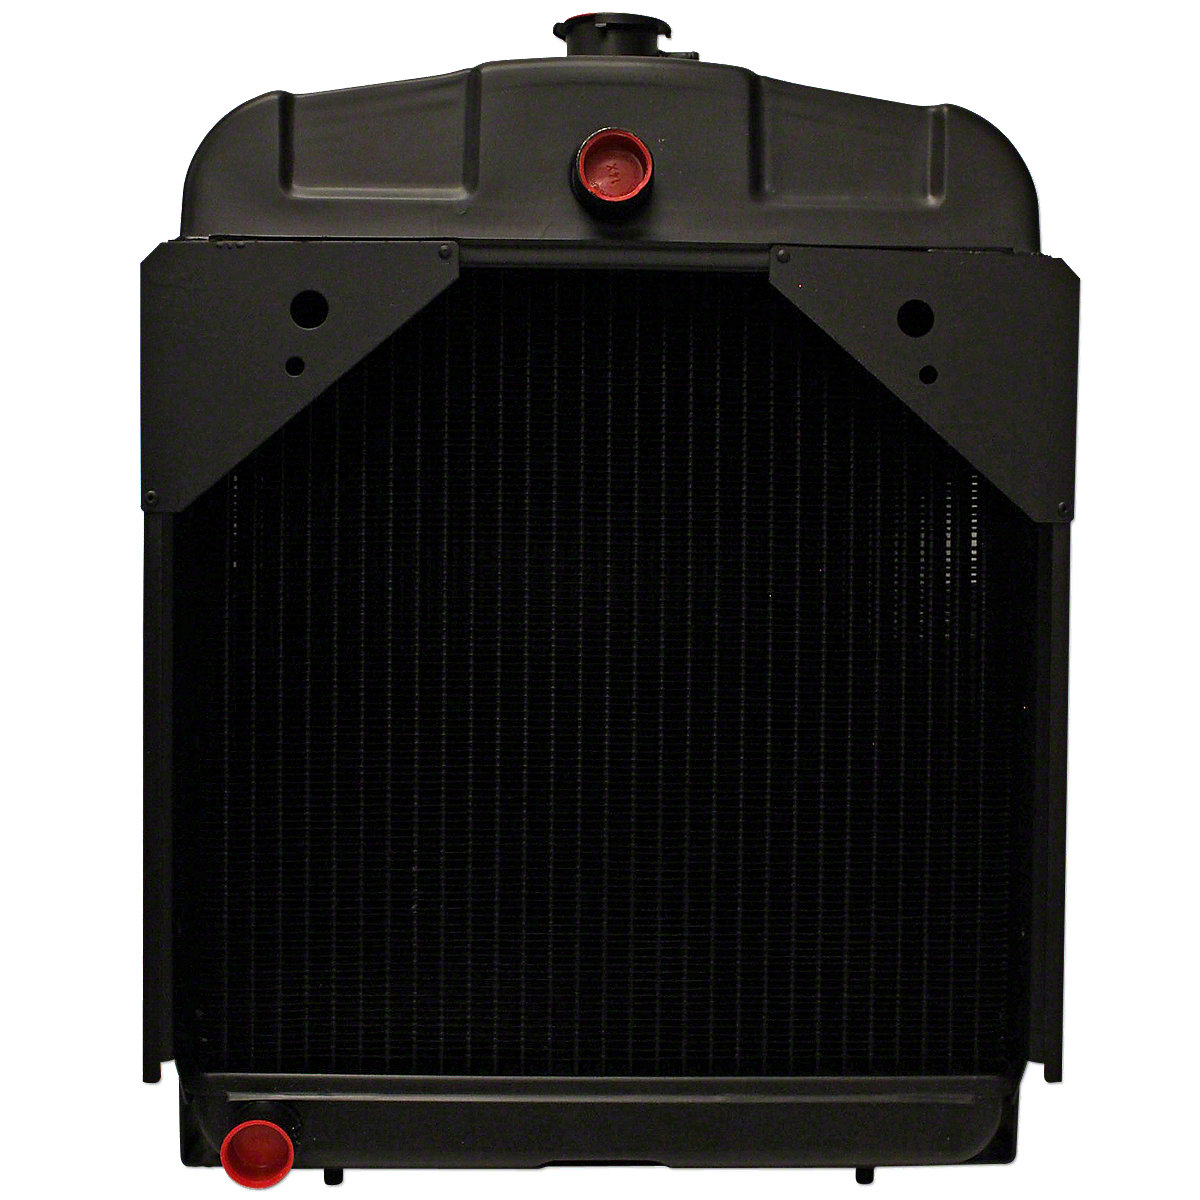 New Radiator For Allis Chalmers: B, C, CA, D10, D12.